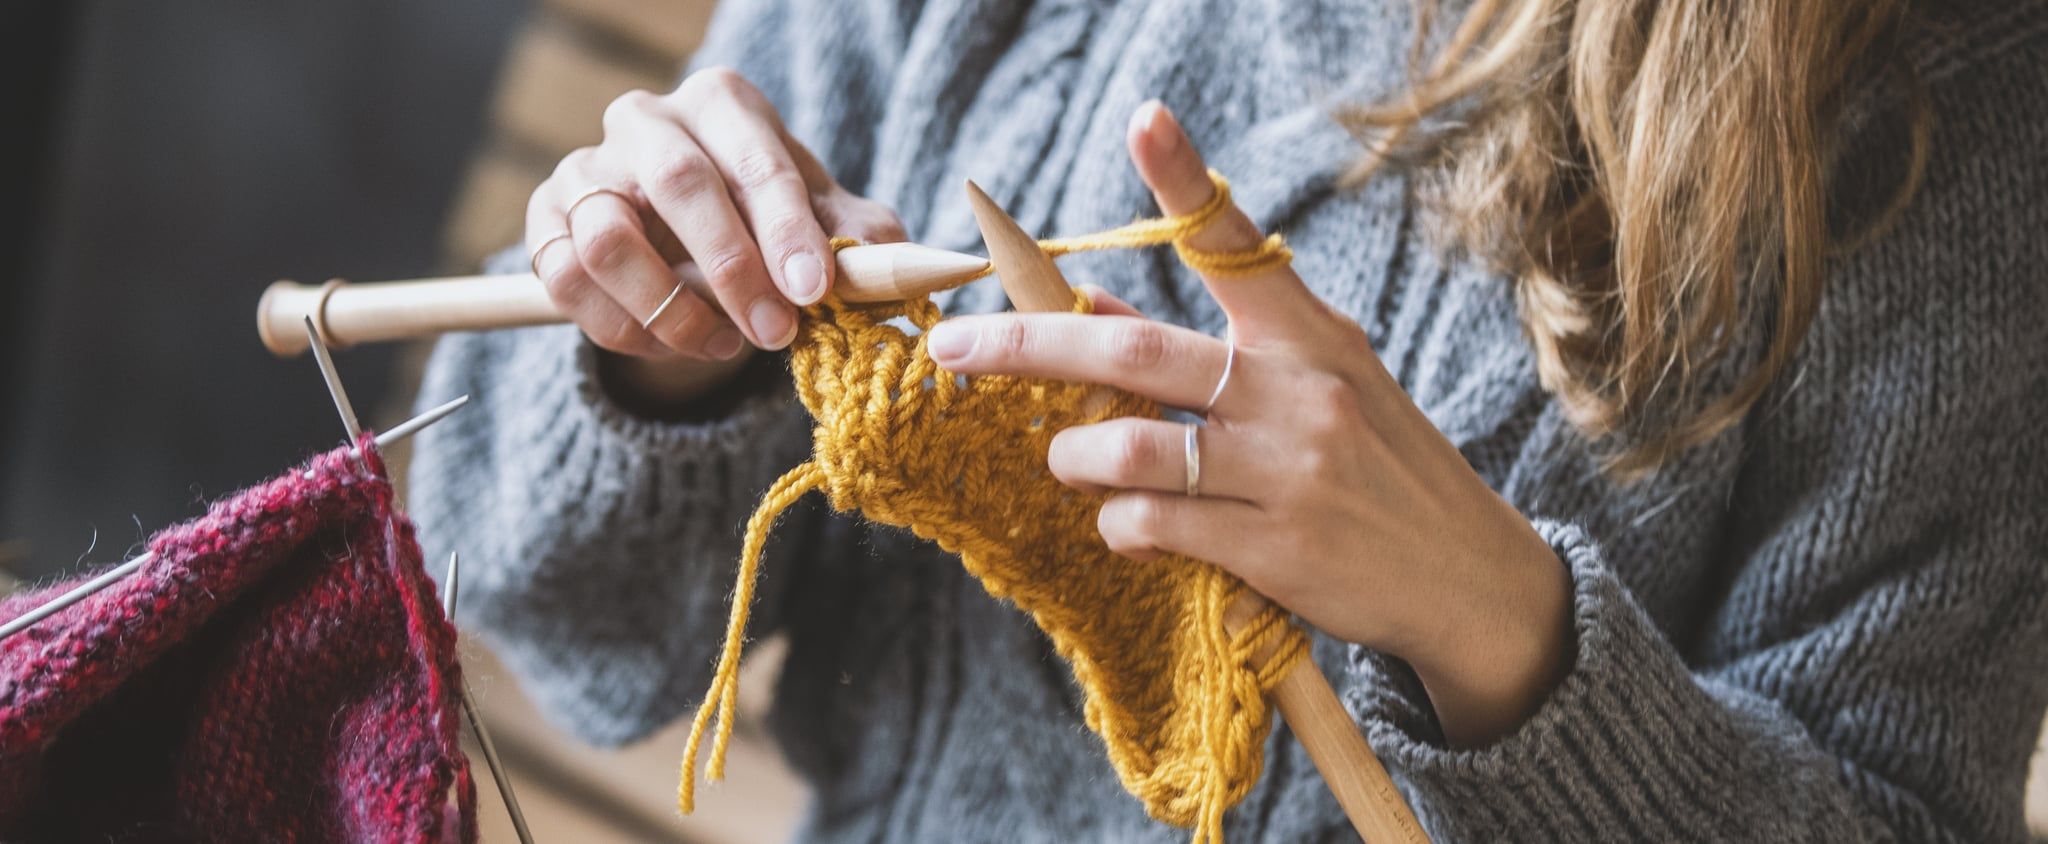 Are Hobbies Good For Your Mental Health?